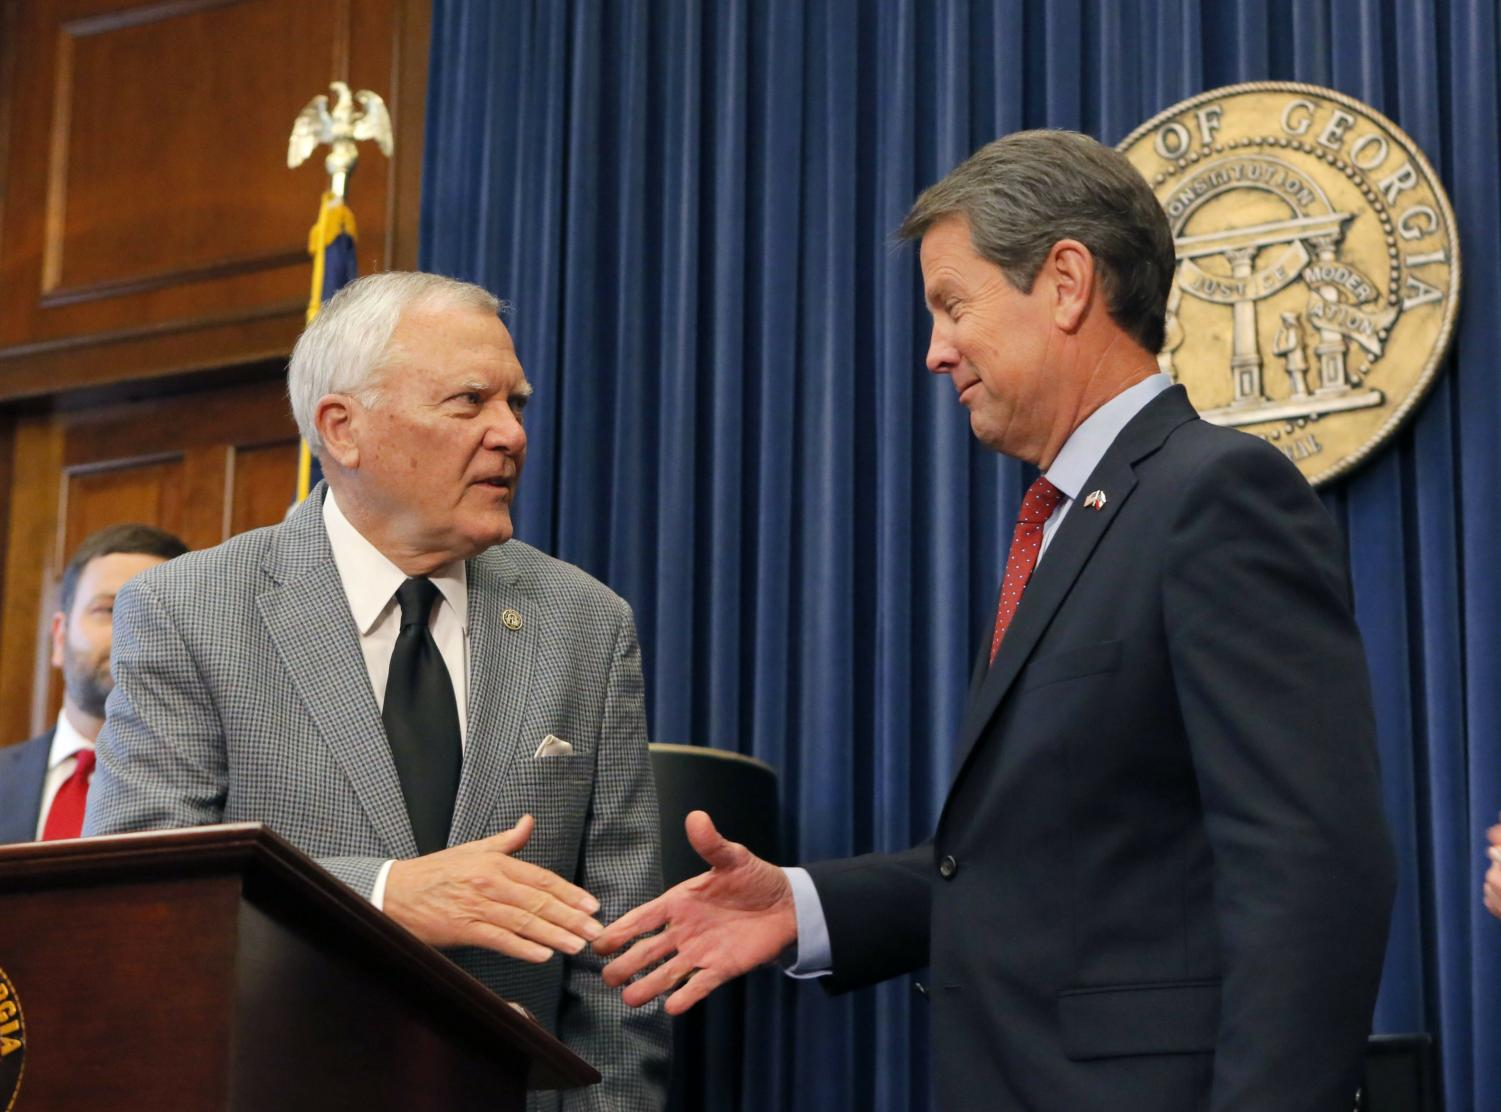 Former Secretary of State Brian Kemp (right) shakes hands with Georgia Governor Nathan Deal (left) on Nov. 8, as Kemp resigns from his position.